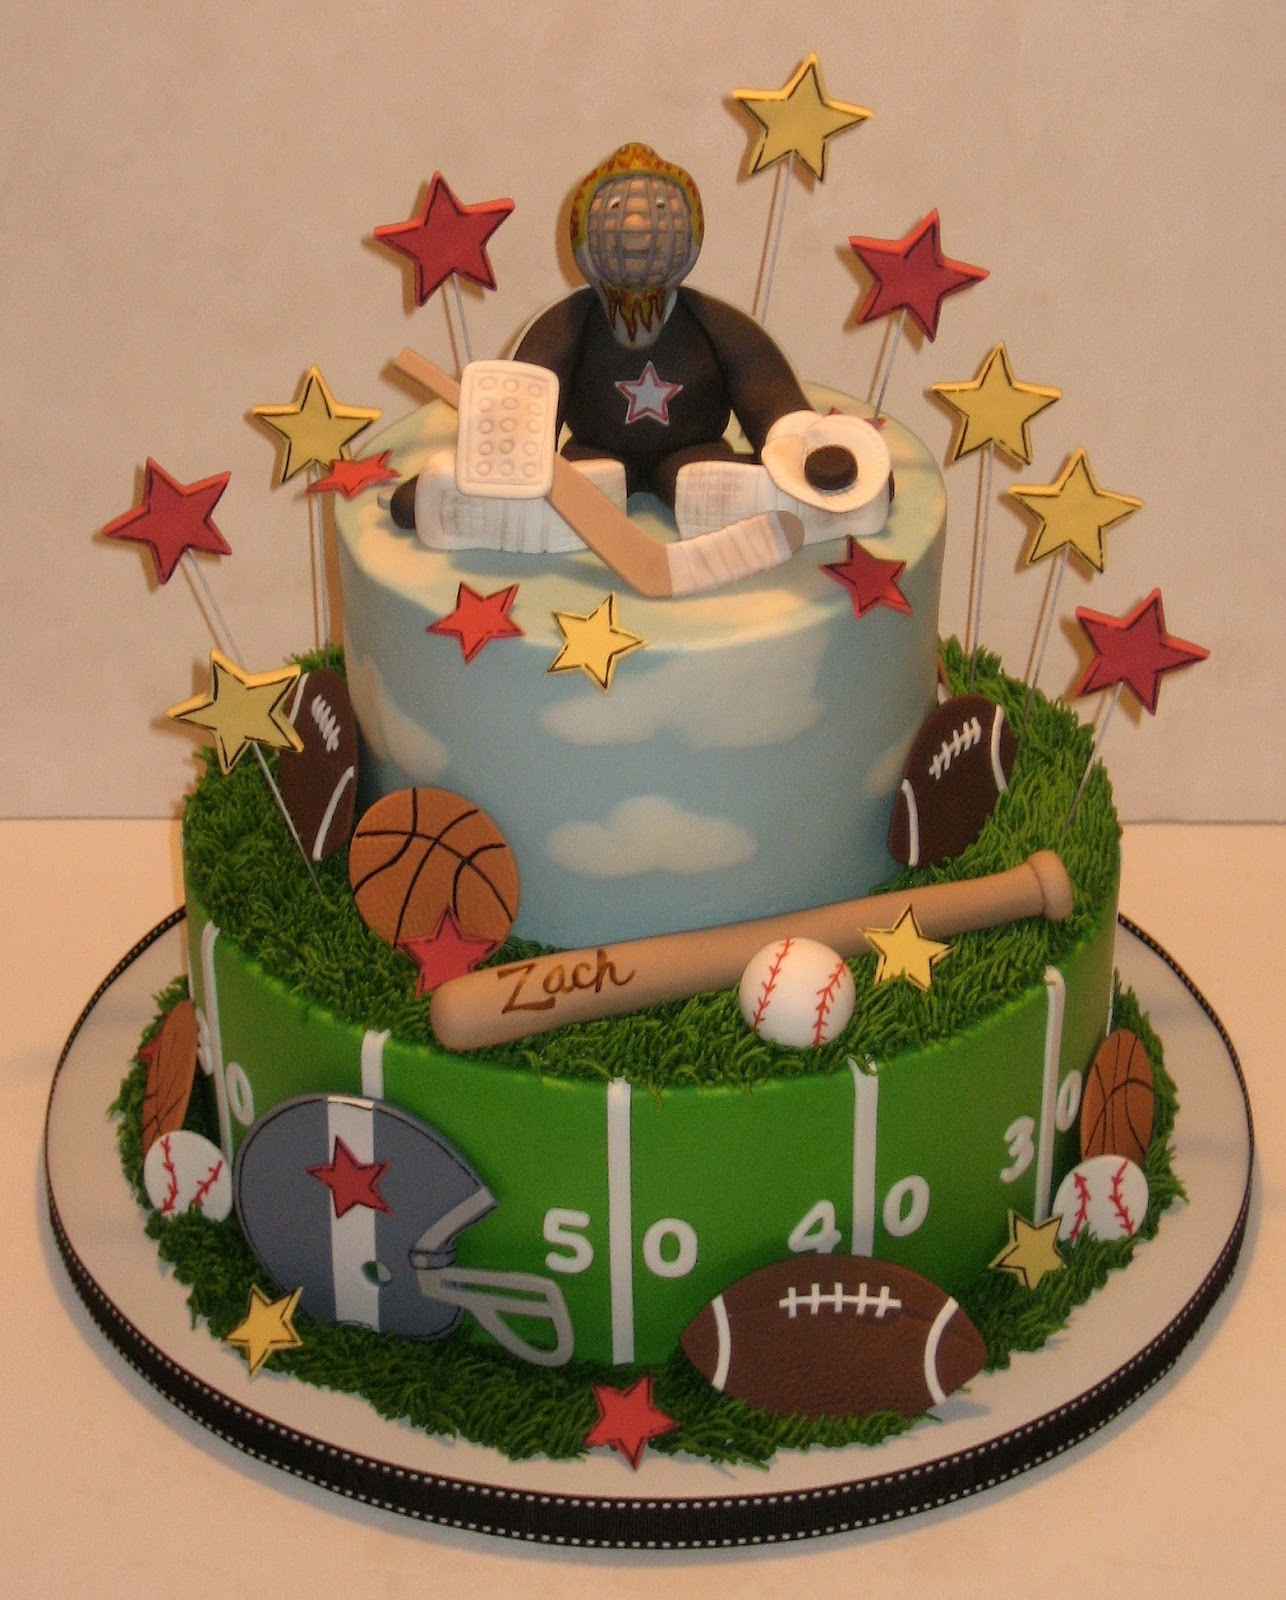 Boys Sports Birthday Cake Ideas And Designs